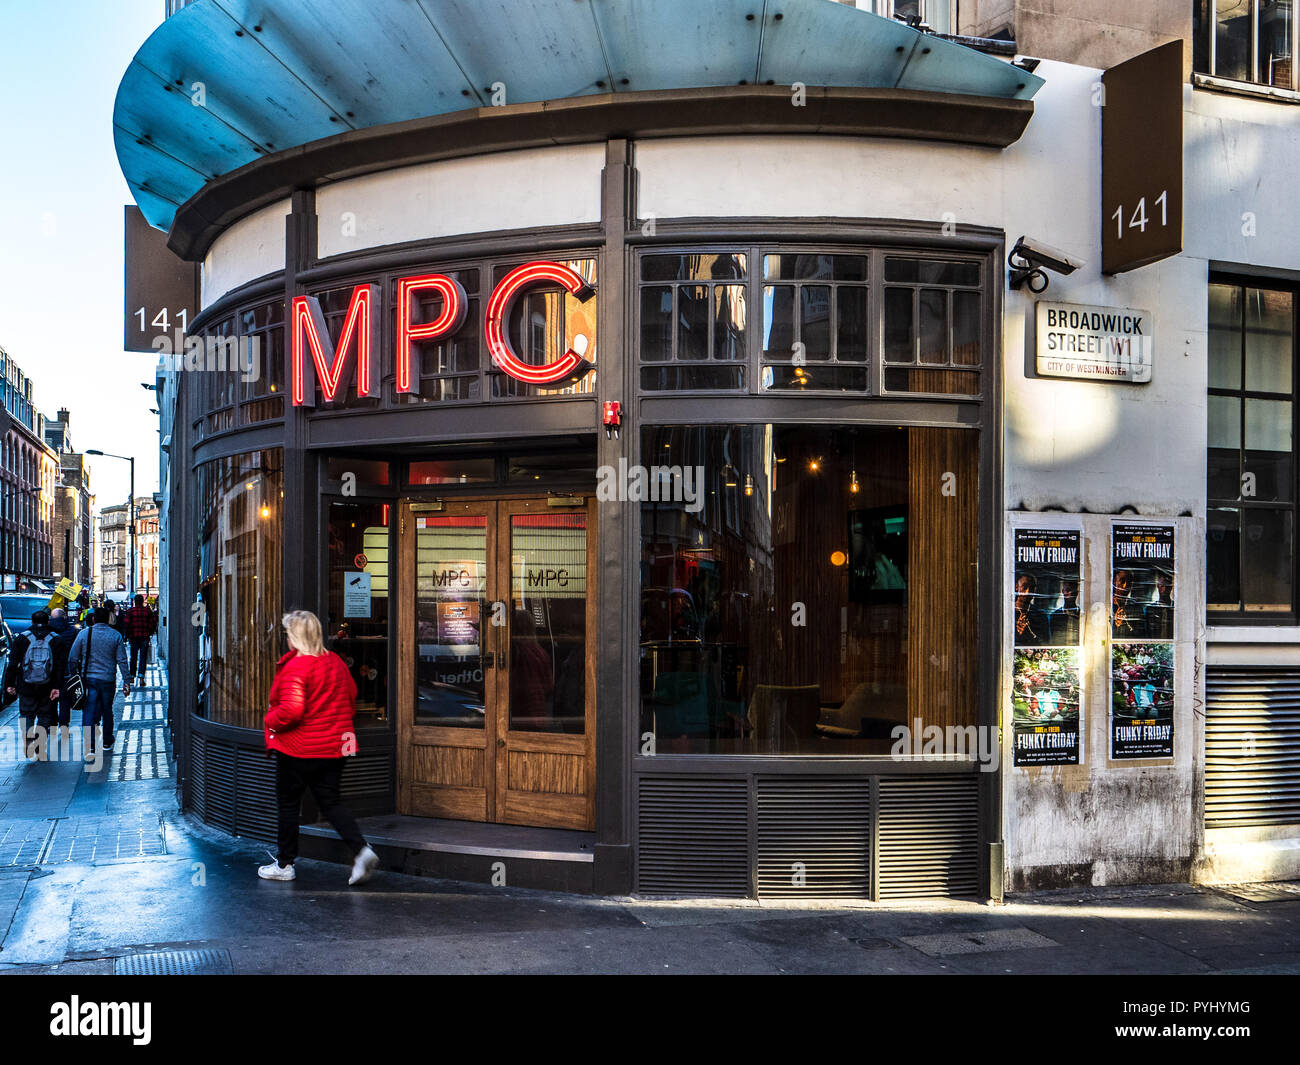 MPC M.P.C the Moving Picture Company Headquarters in Wardour Street Soho London. British visual effects and film production studio, founded 1974 - Stock Image